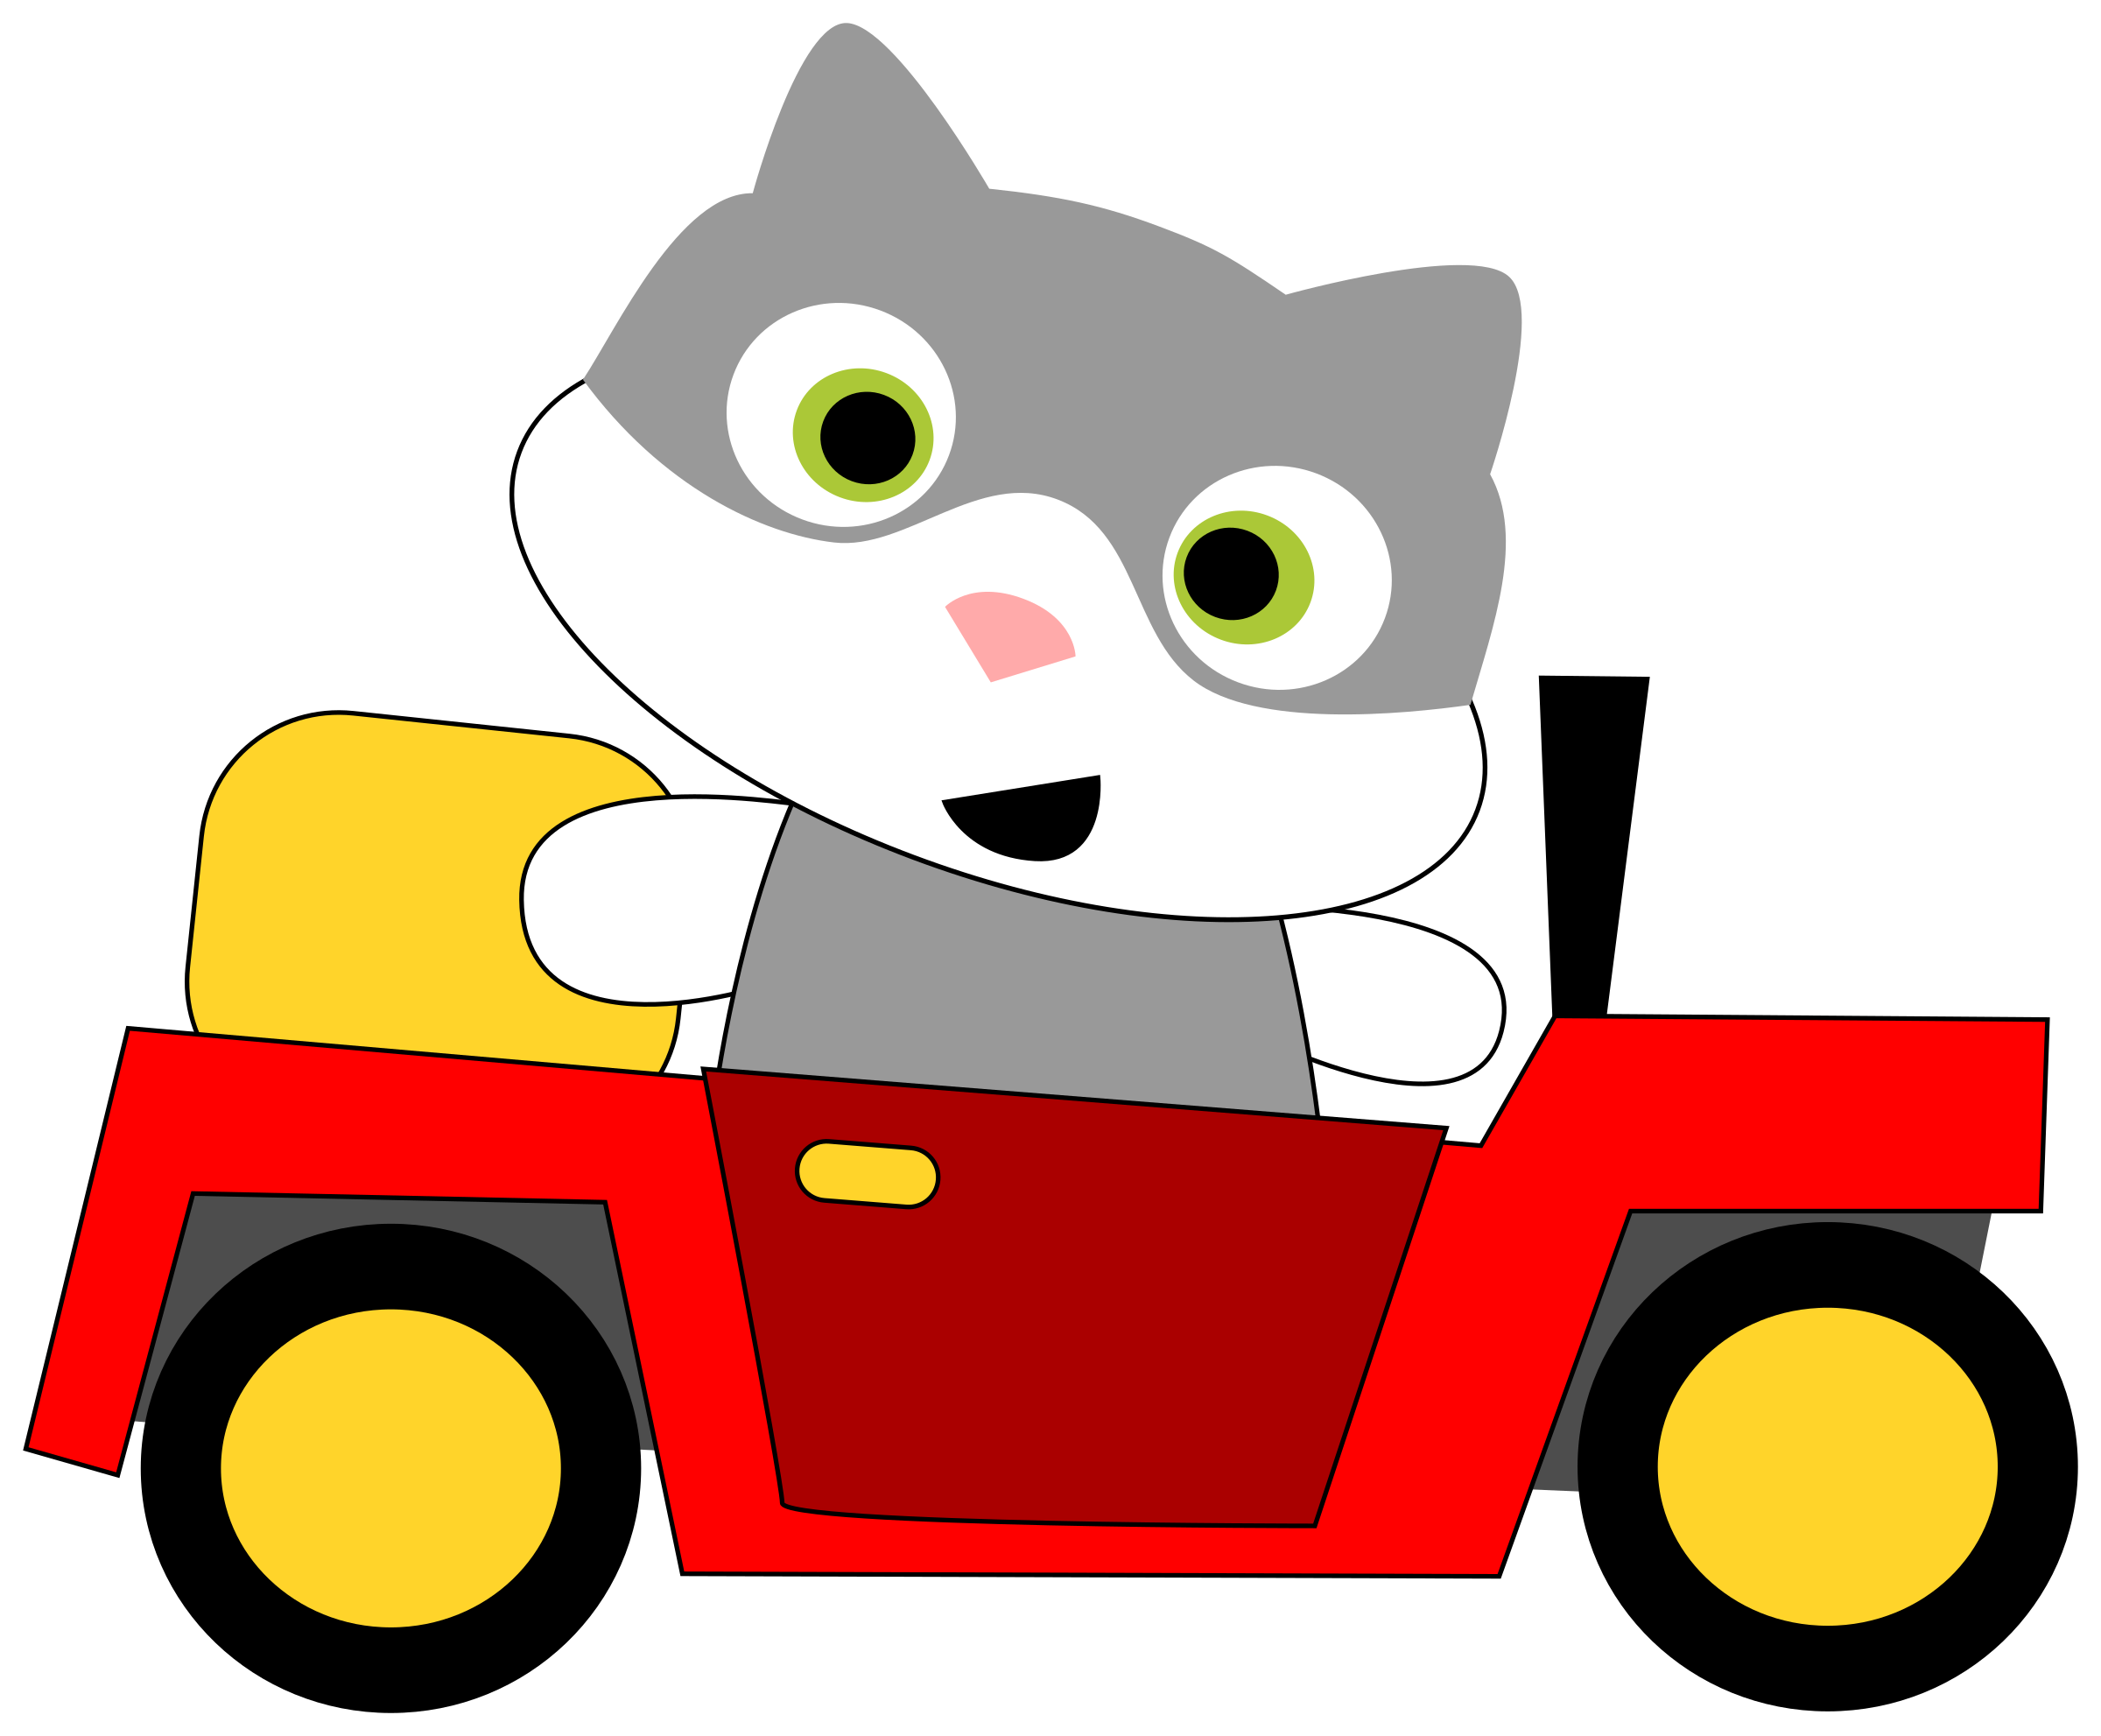 Christmas clipart cat svg royalty free download Car Driving Clipart | Free download best Car Driving Clipart on ... svg royalty free download